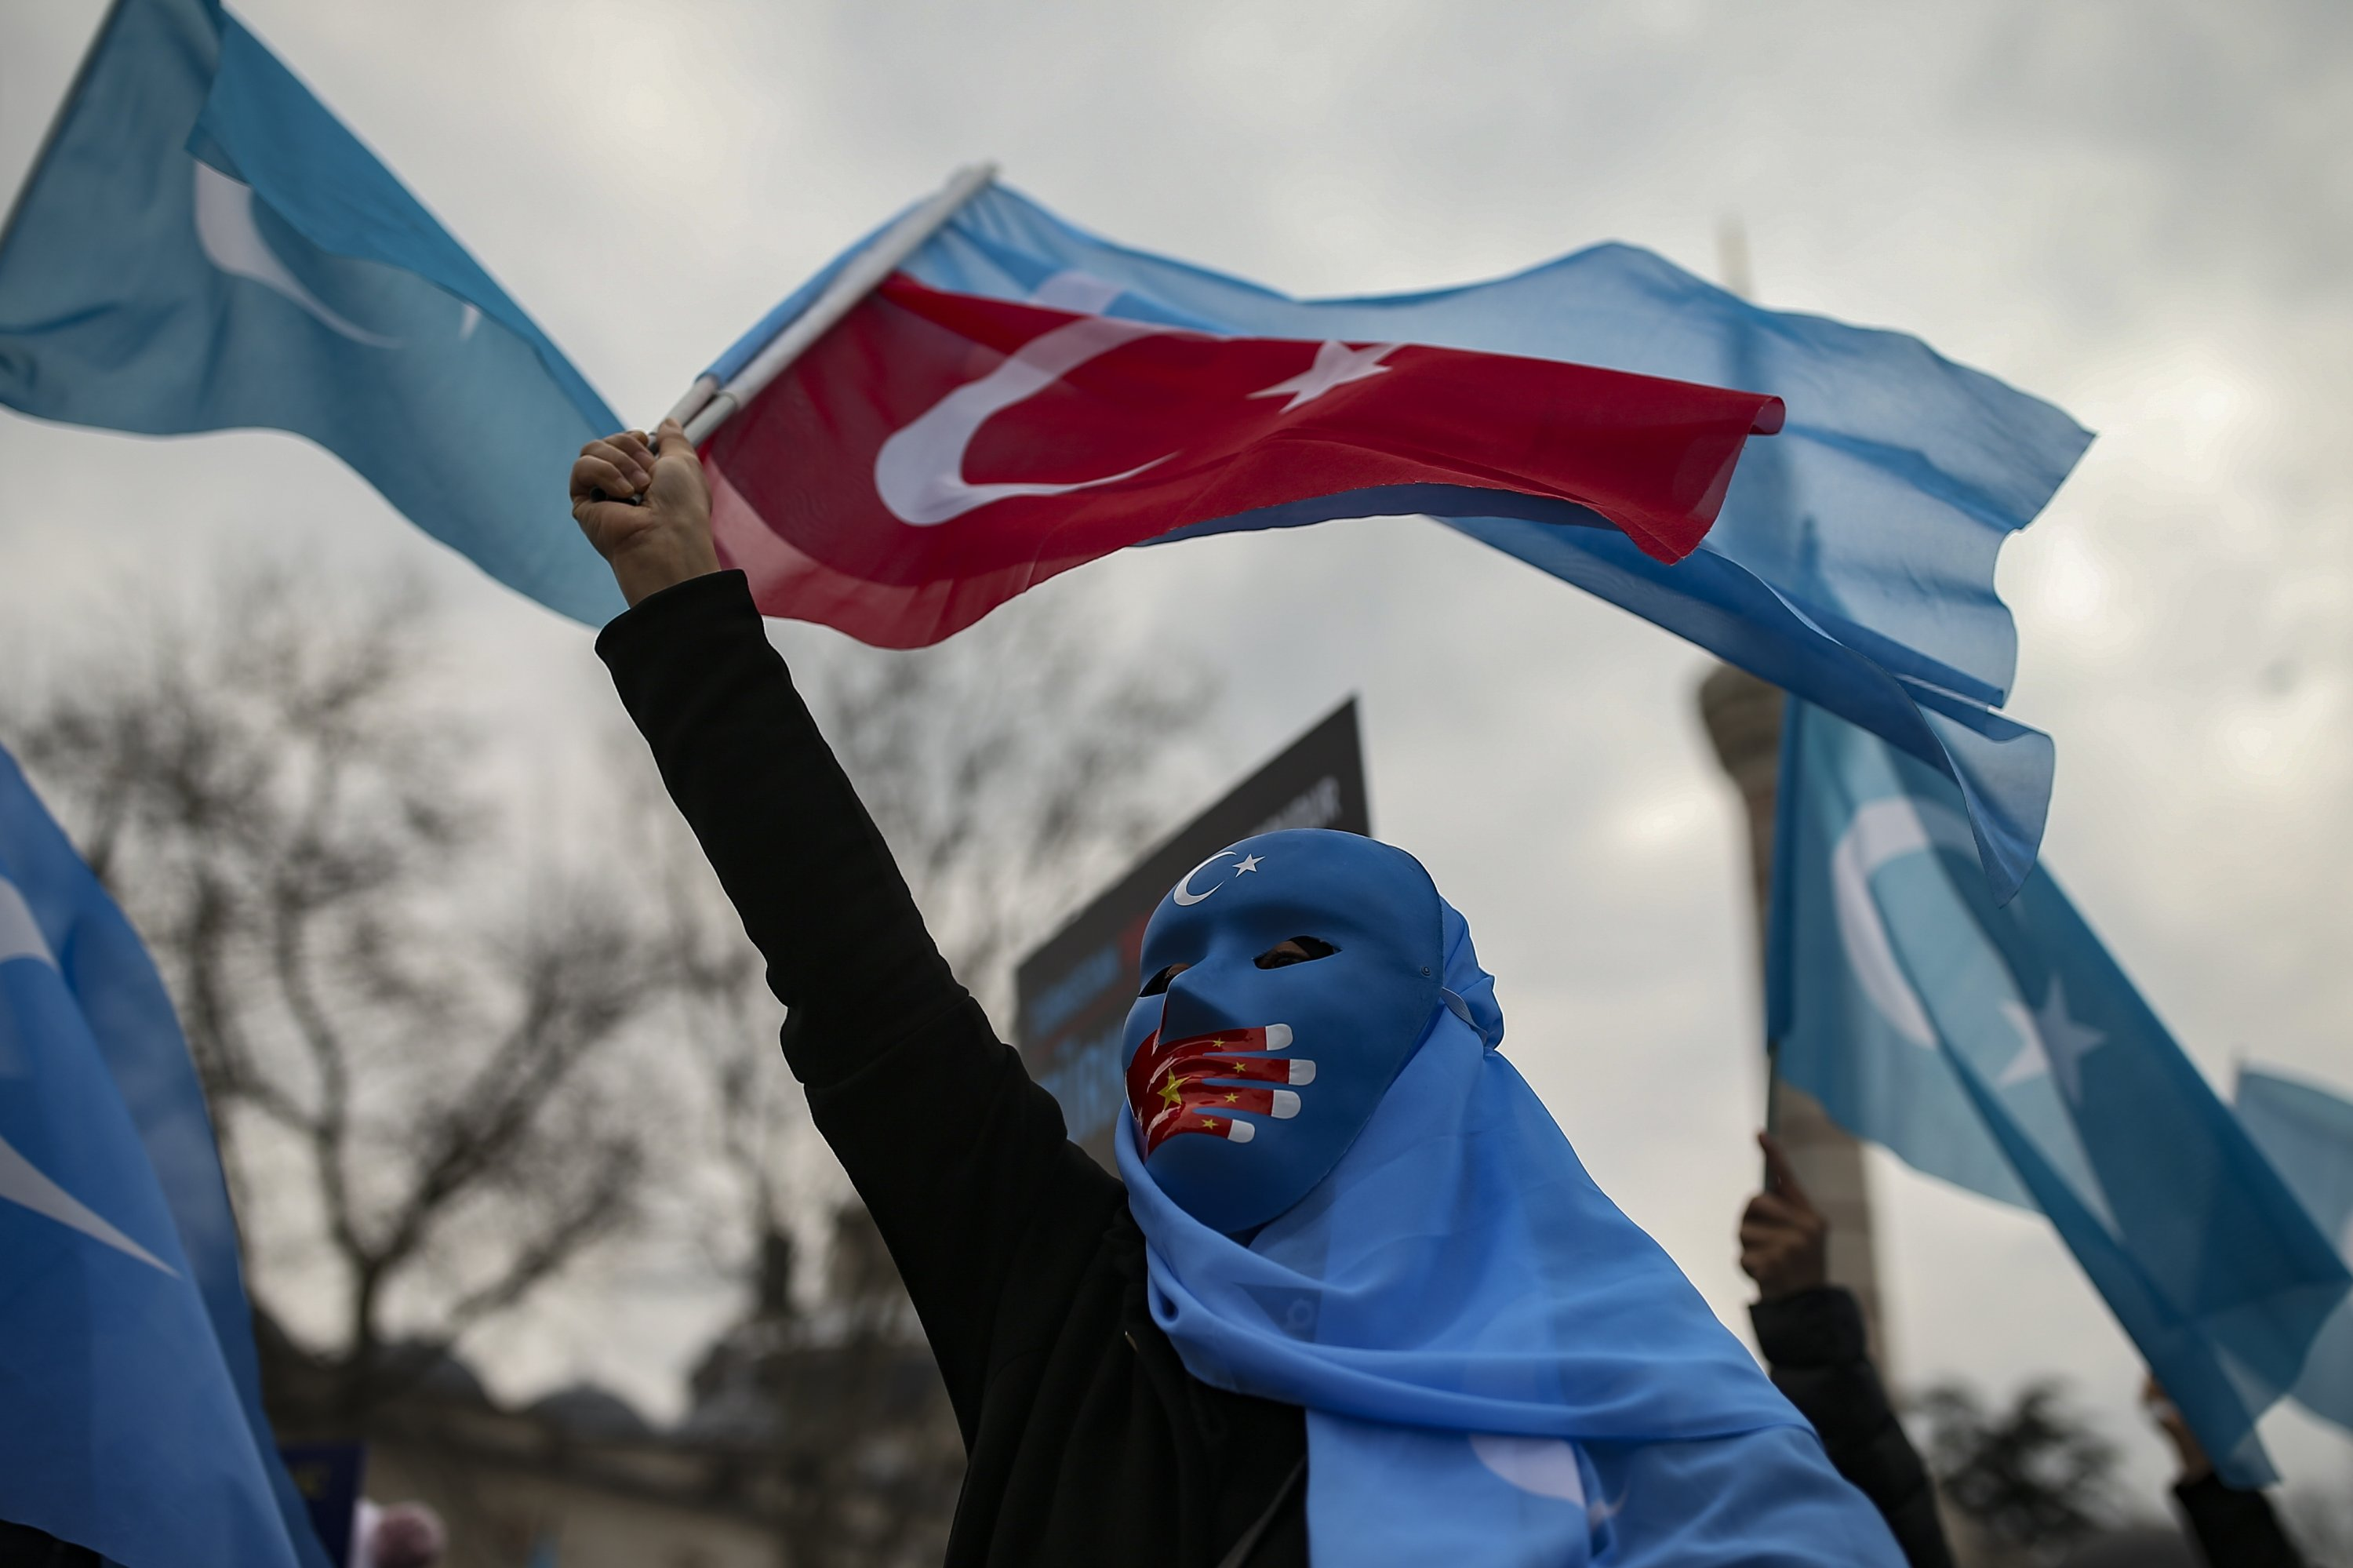 A protester from the Uyghur community living in Turkey waves a Turkish flag during a protest against China's treatment of Uyghurs, in Istanbul, Turkey, March 25, 2021. (AP Photo)